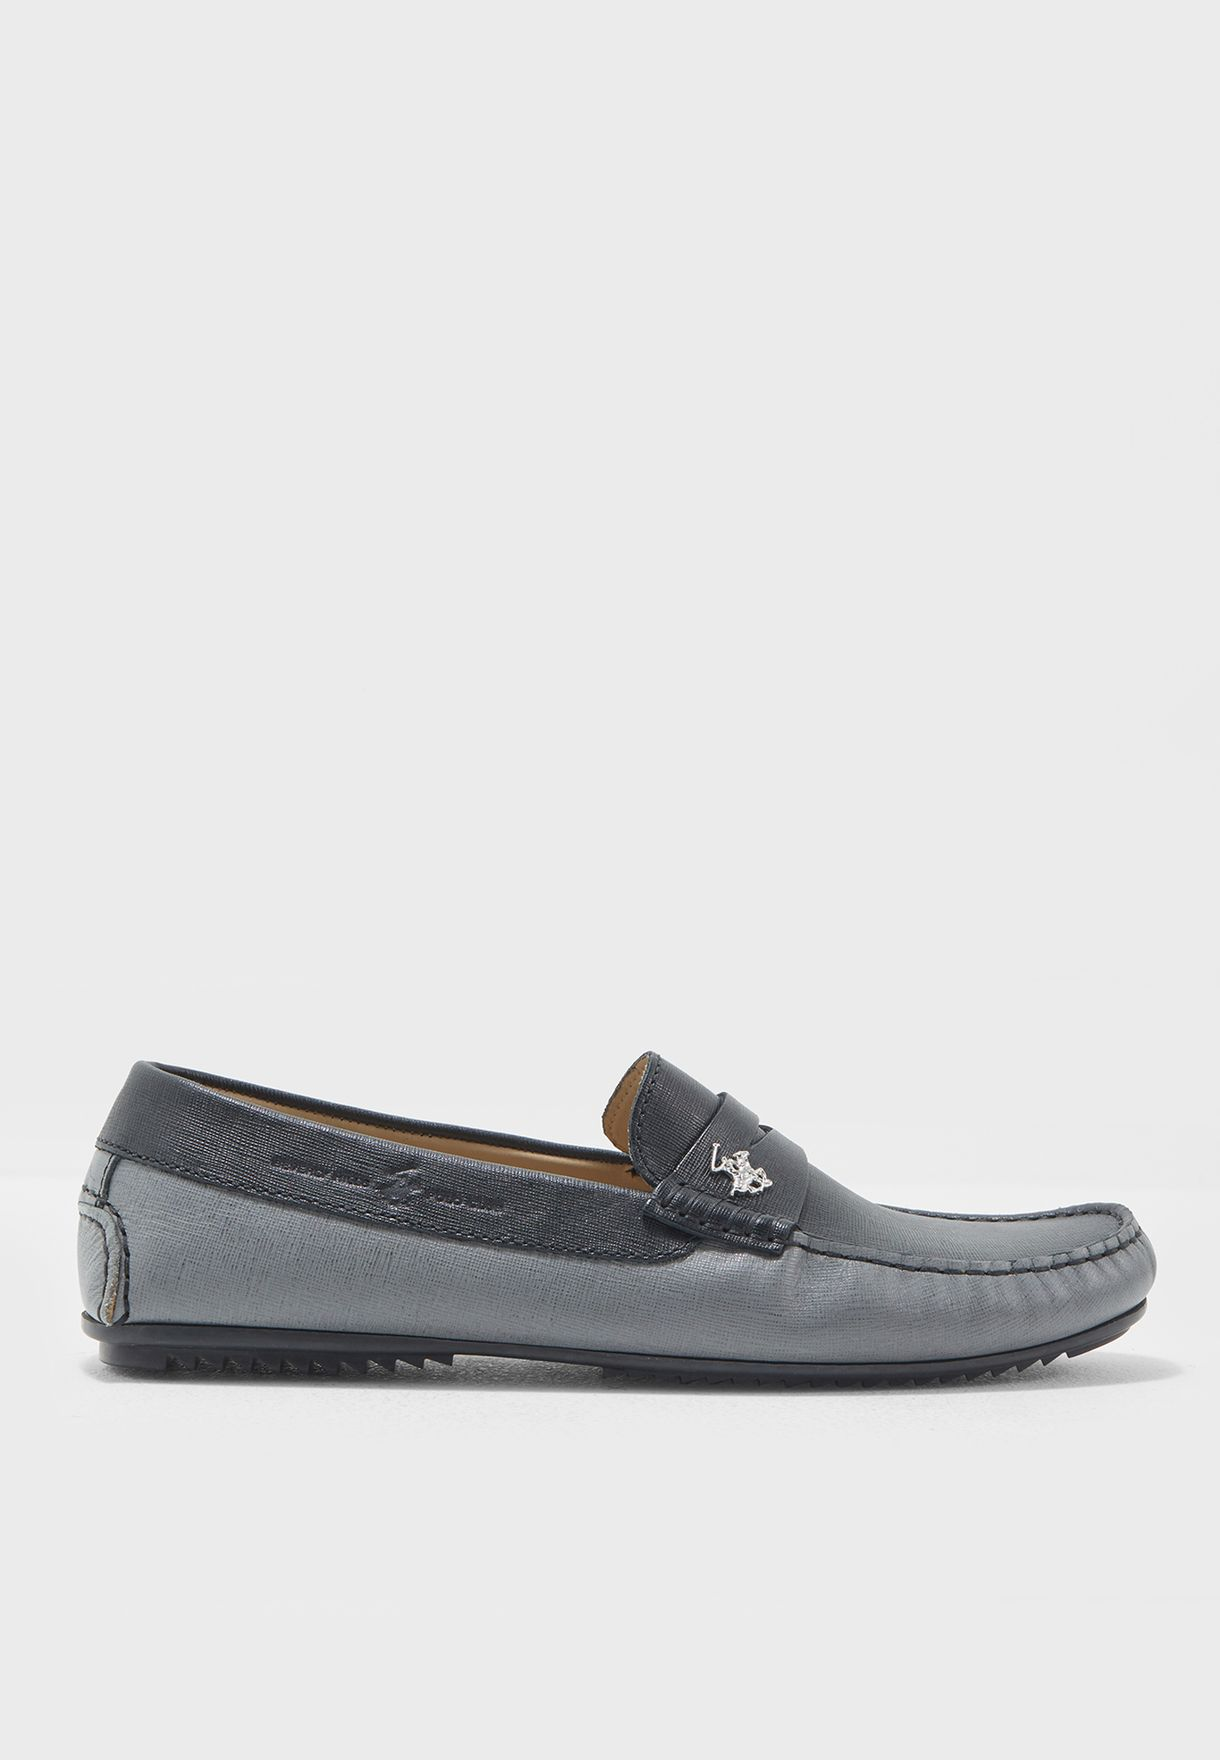 798d54e6b6c Shop Beverly Hills Polo Club multicolor Leather Loafers BP SH9130 ...